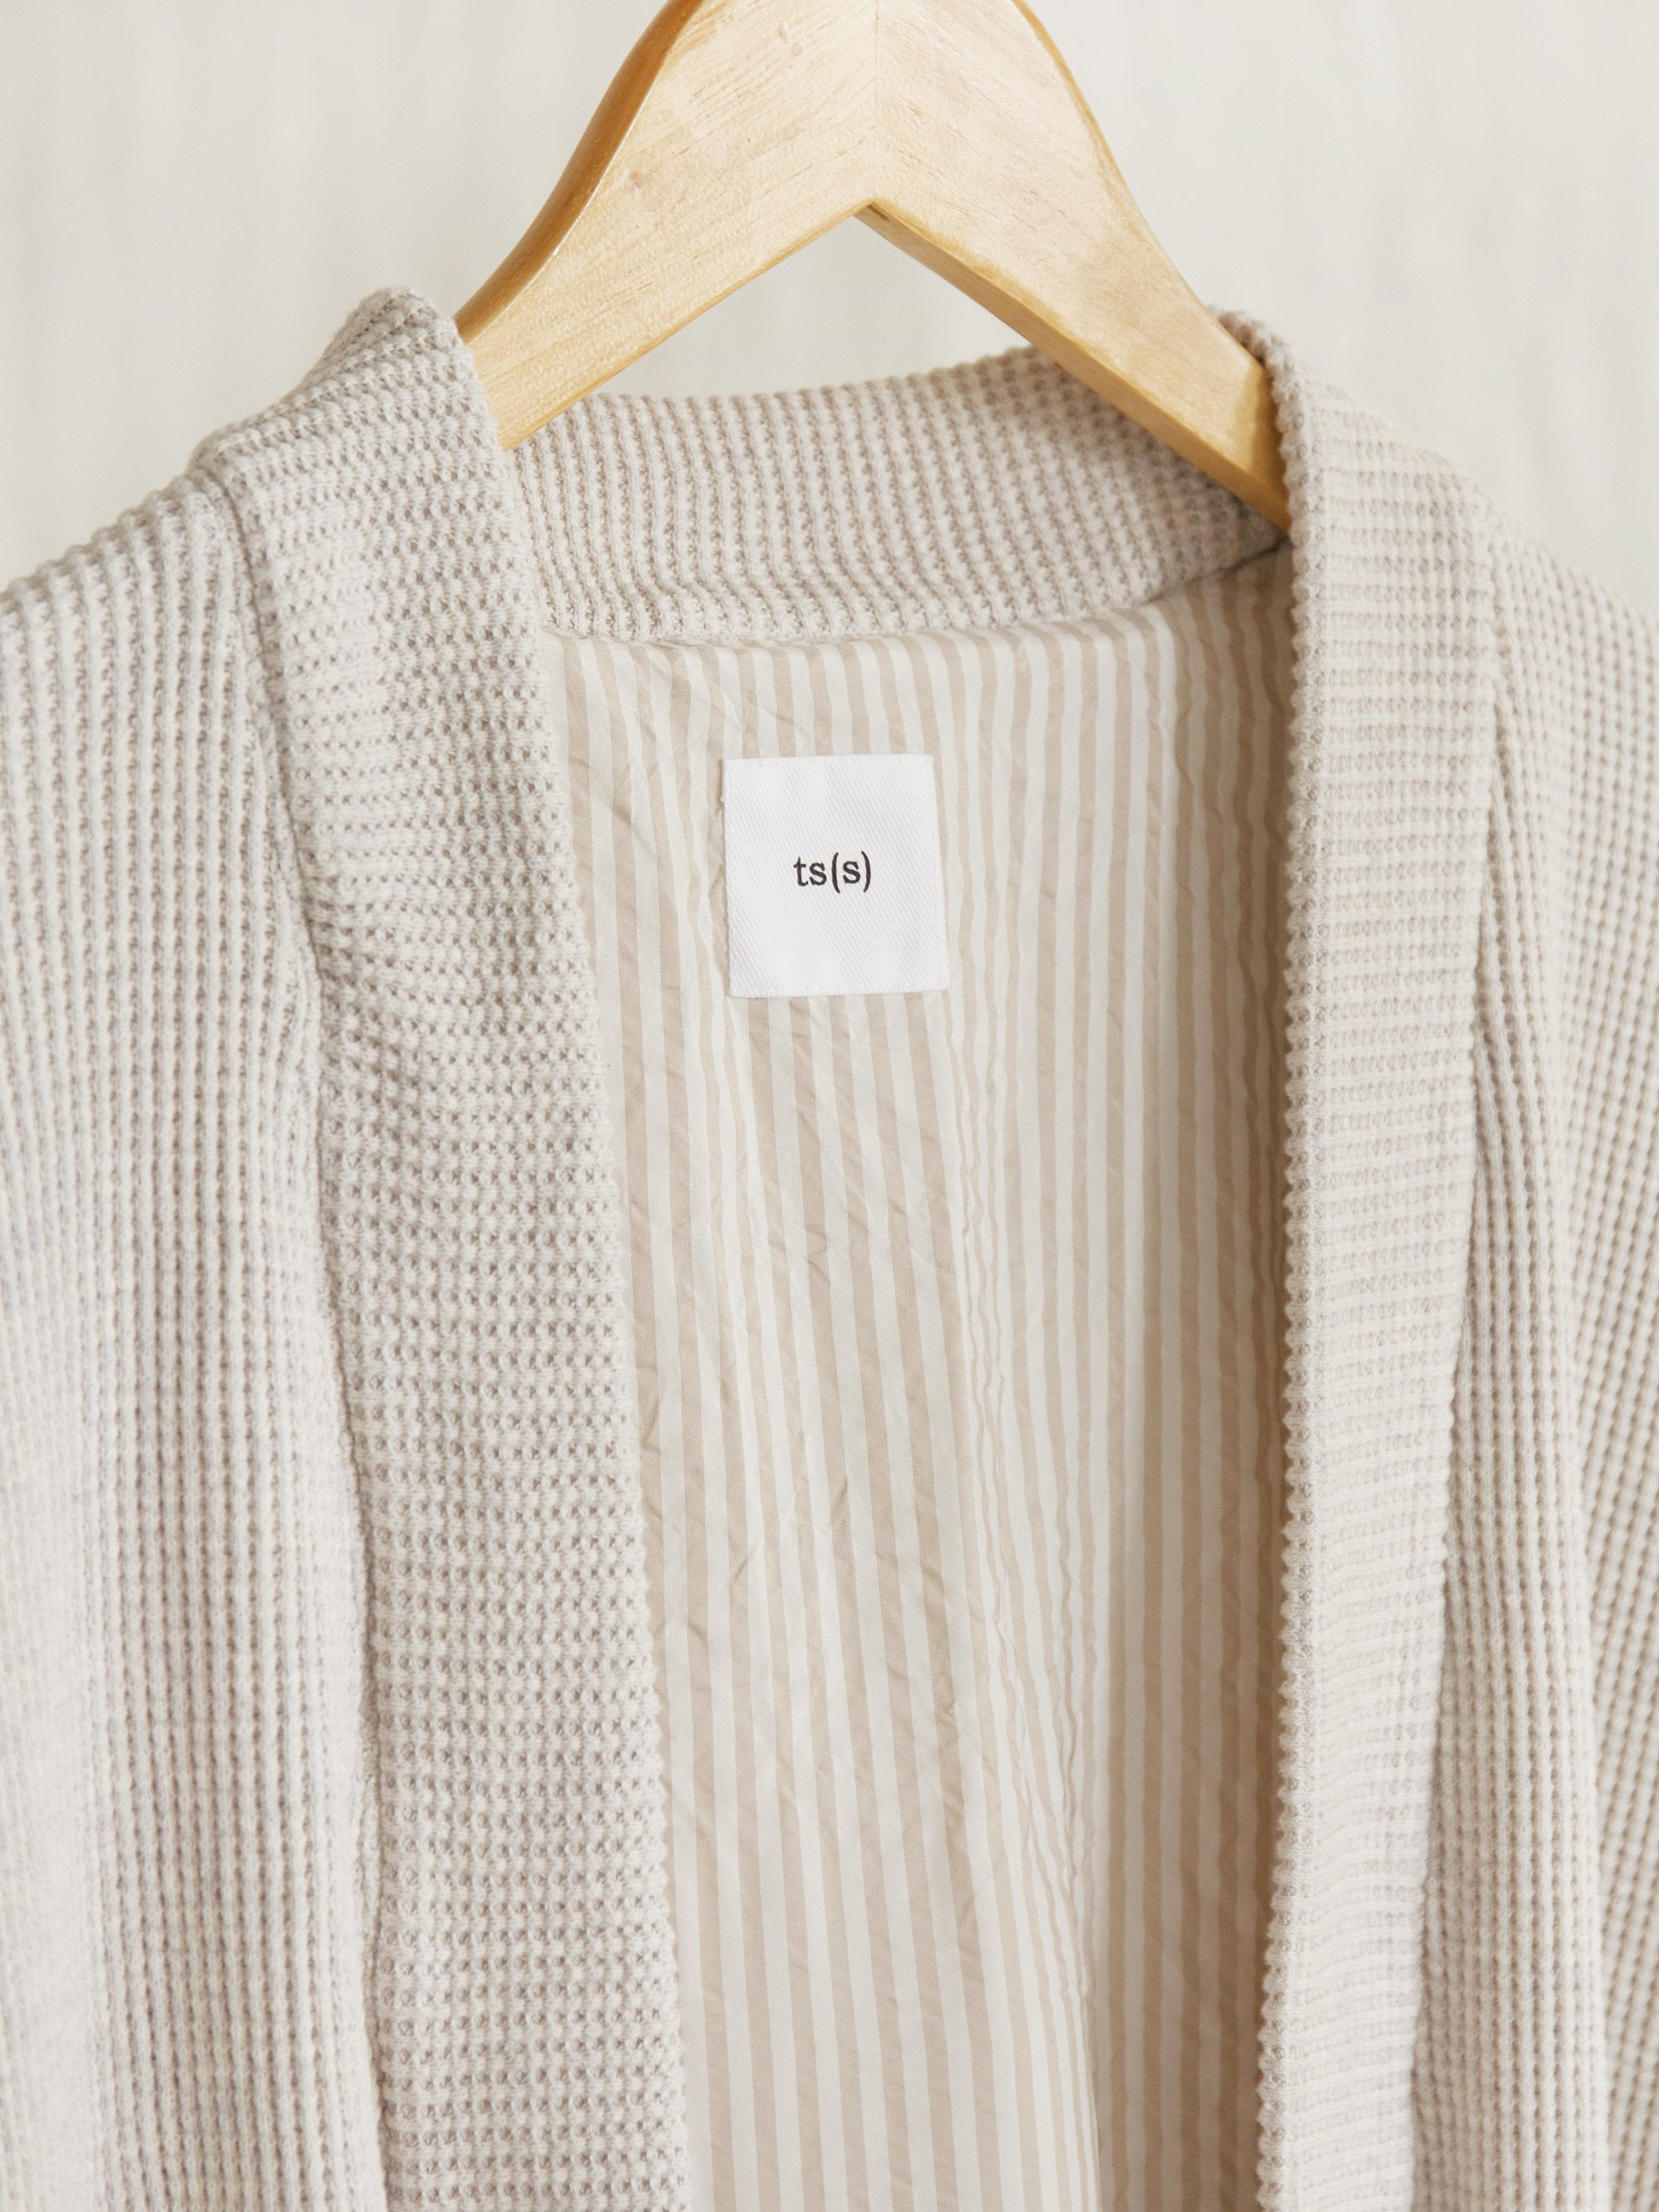 Namu Shop - ts(s) Waffle Jersey Lined Easy Cardigan (Re-stocked)